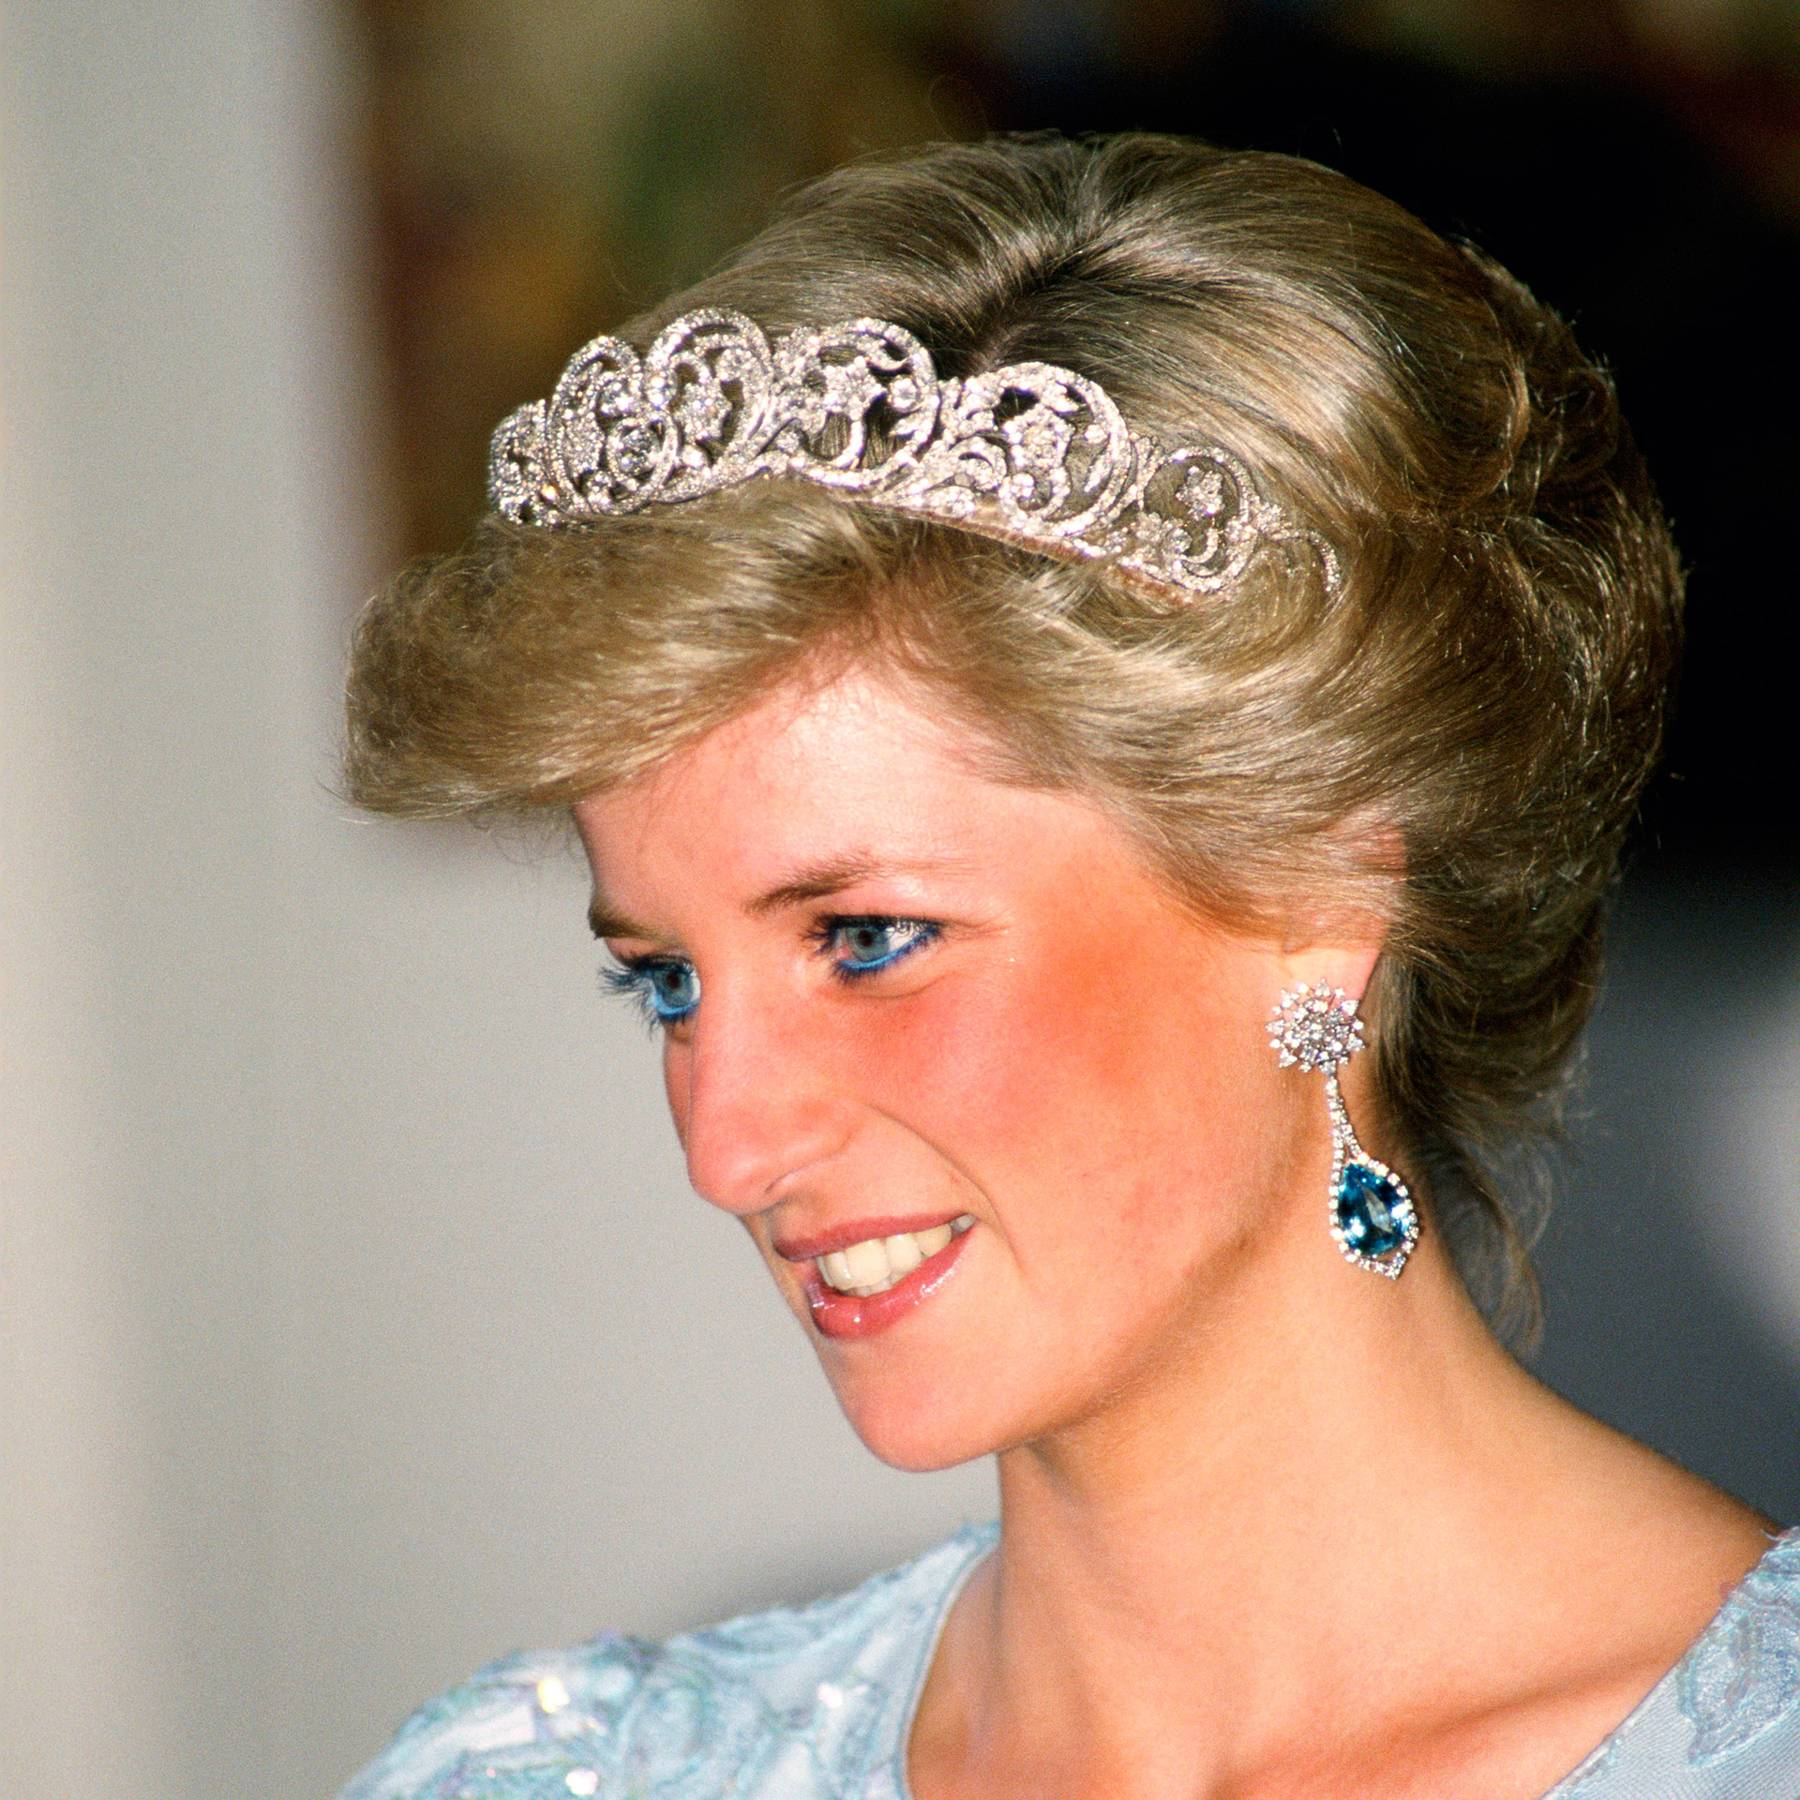 Princess Diana's personal astrologer has some insights into the new royal baby